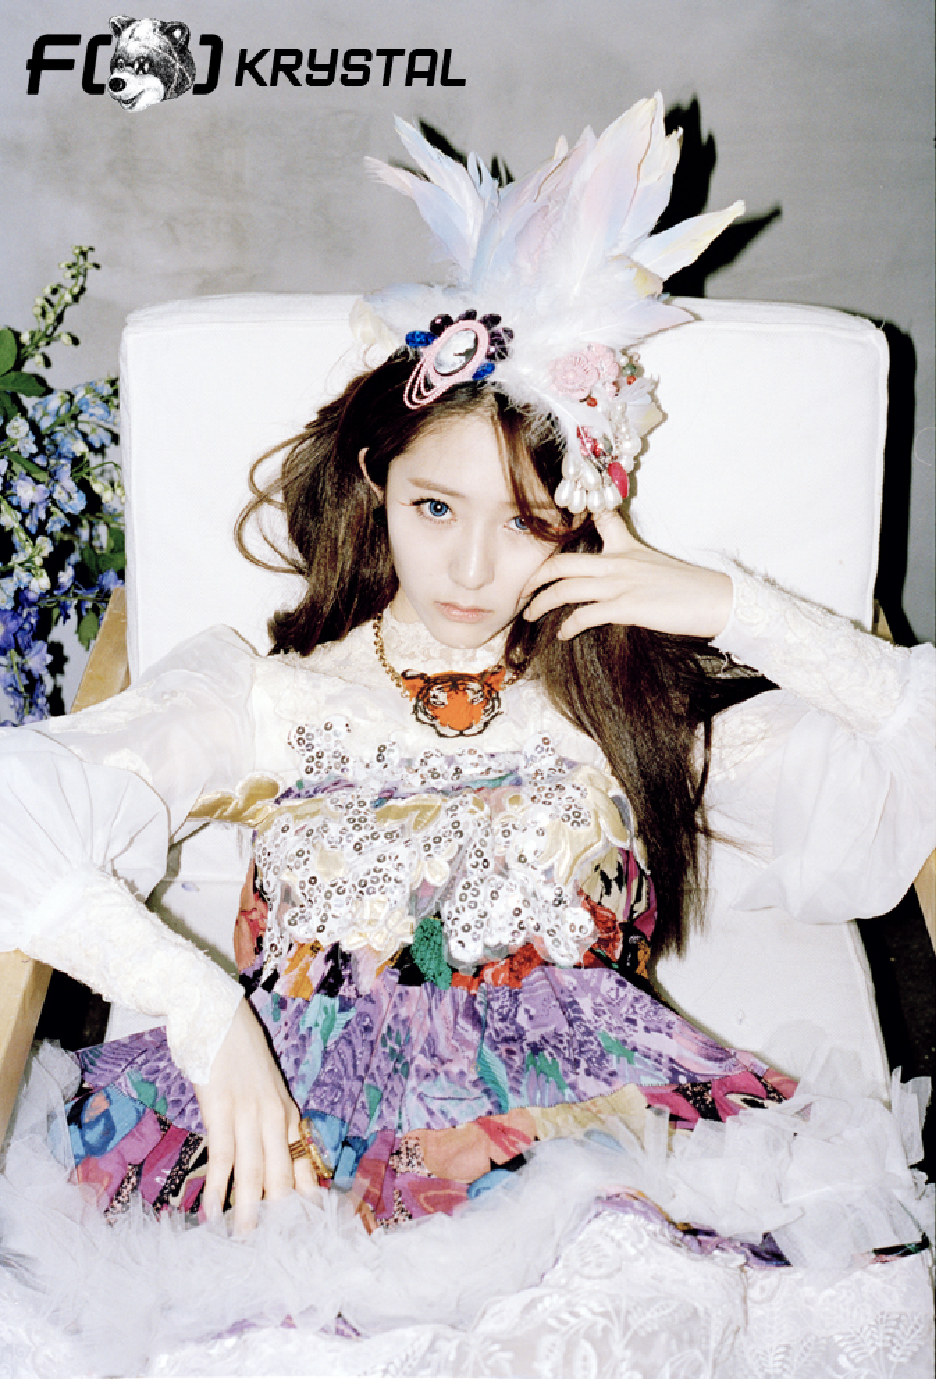 Dhictator Blog's: f(x) - Electric Shock [Photo] F(x) Electric Shock Album Cover